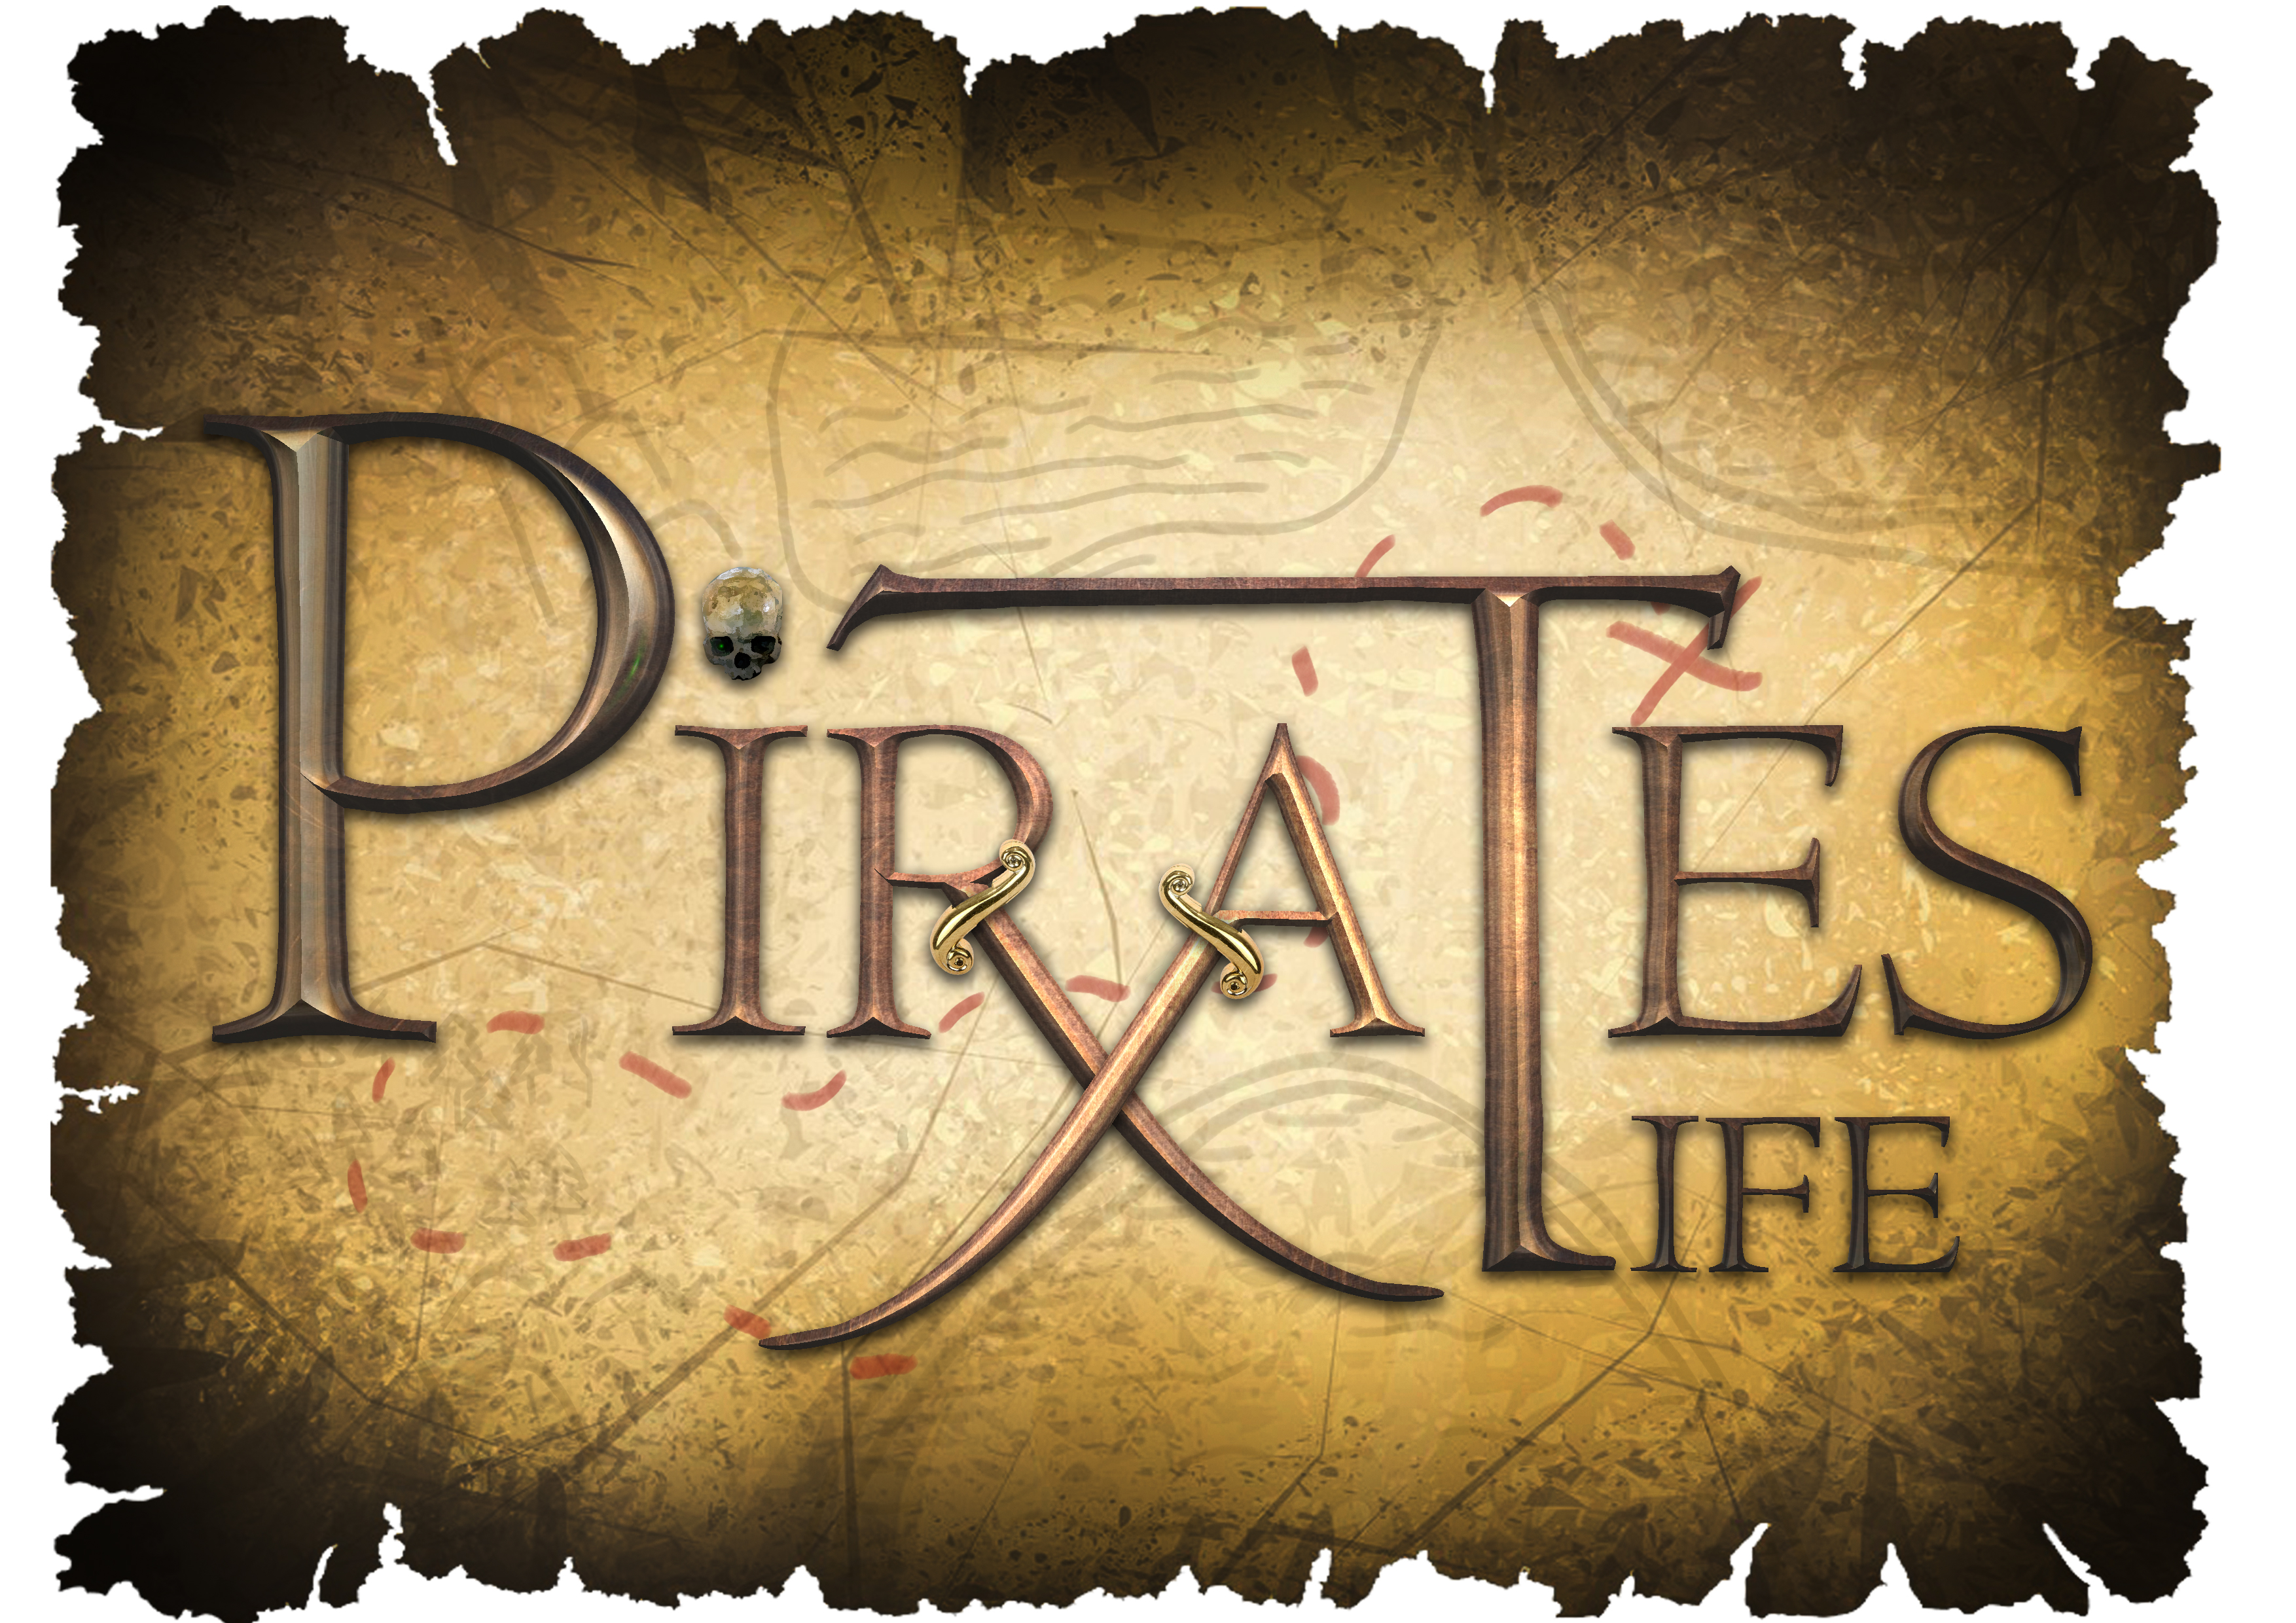 Pirate Life Poster